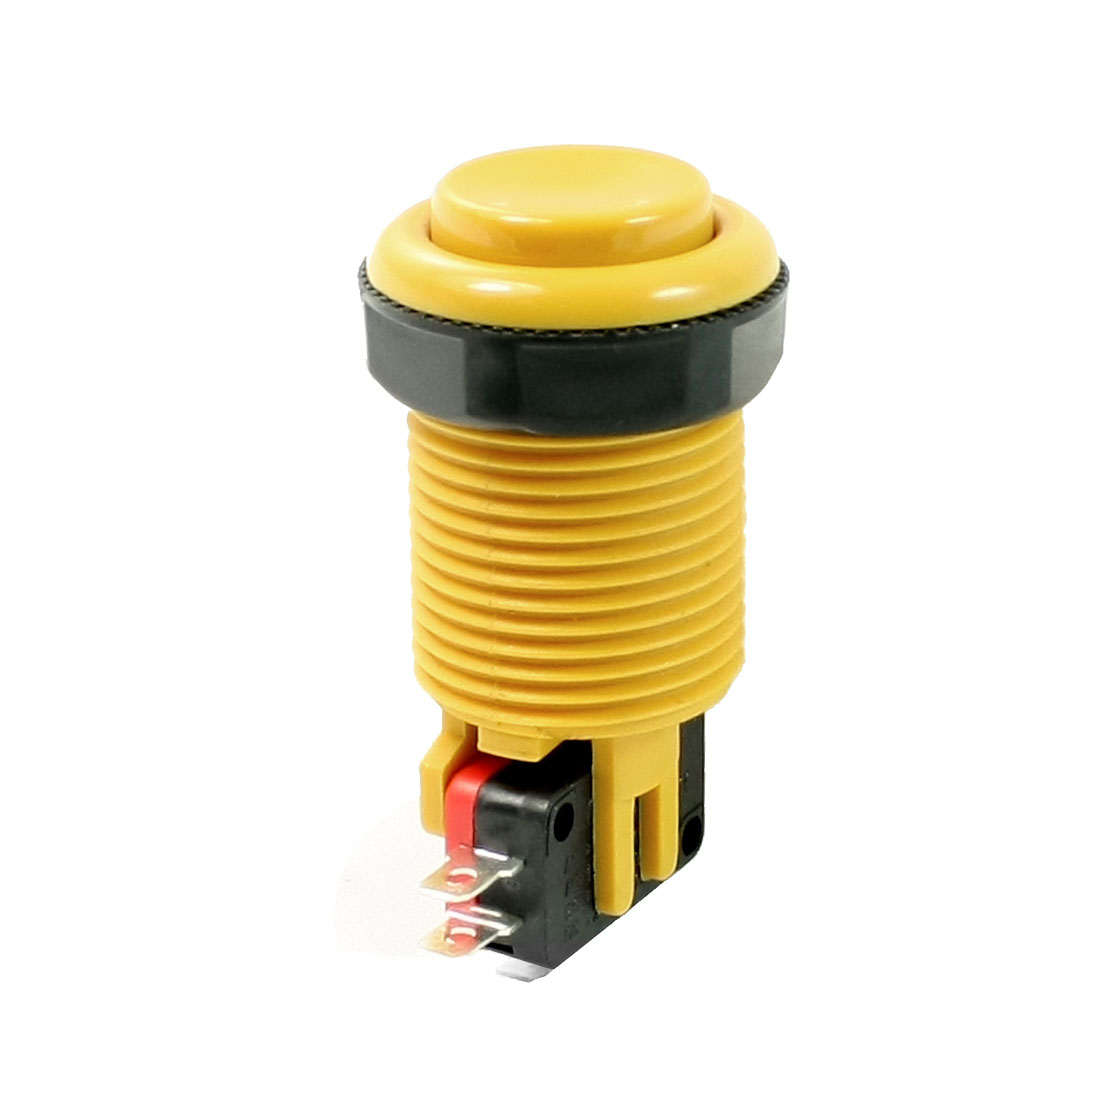 AC 250V 15A Panel Mounting Type 28mm Dia Thread Momentary Push Button Switch